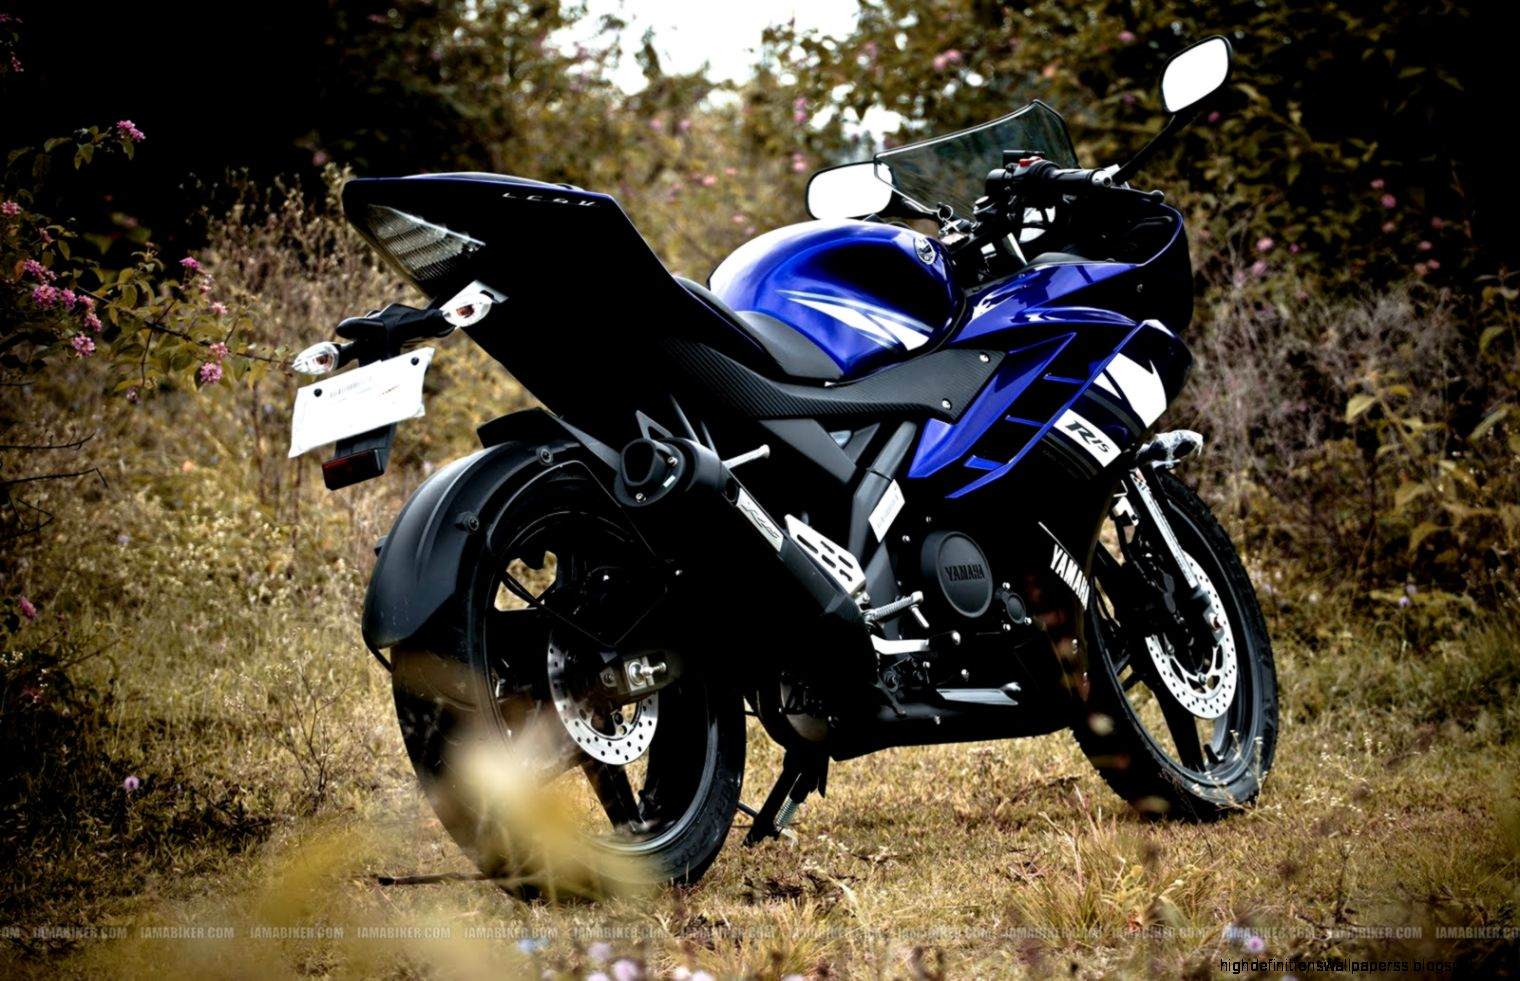 View Original Size Yamaha R15 Bike HD Wallpapers Free Desk Image Source From This